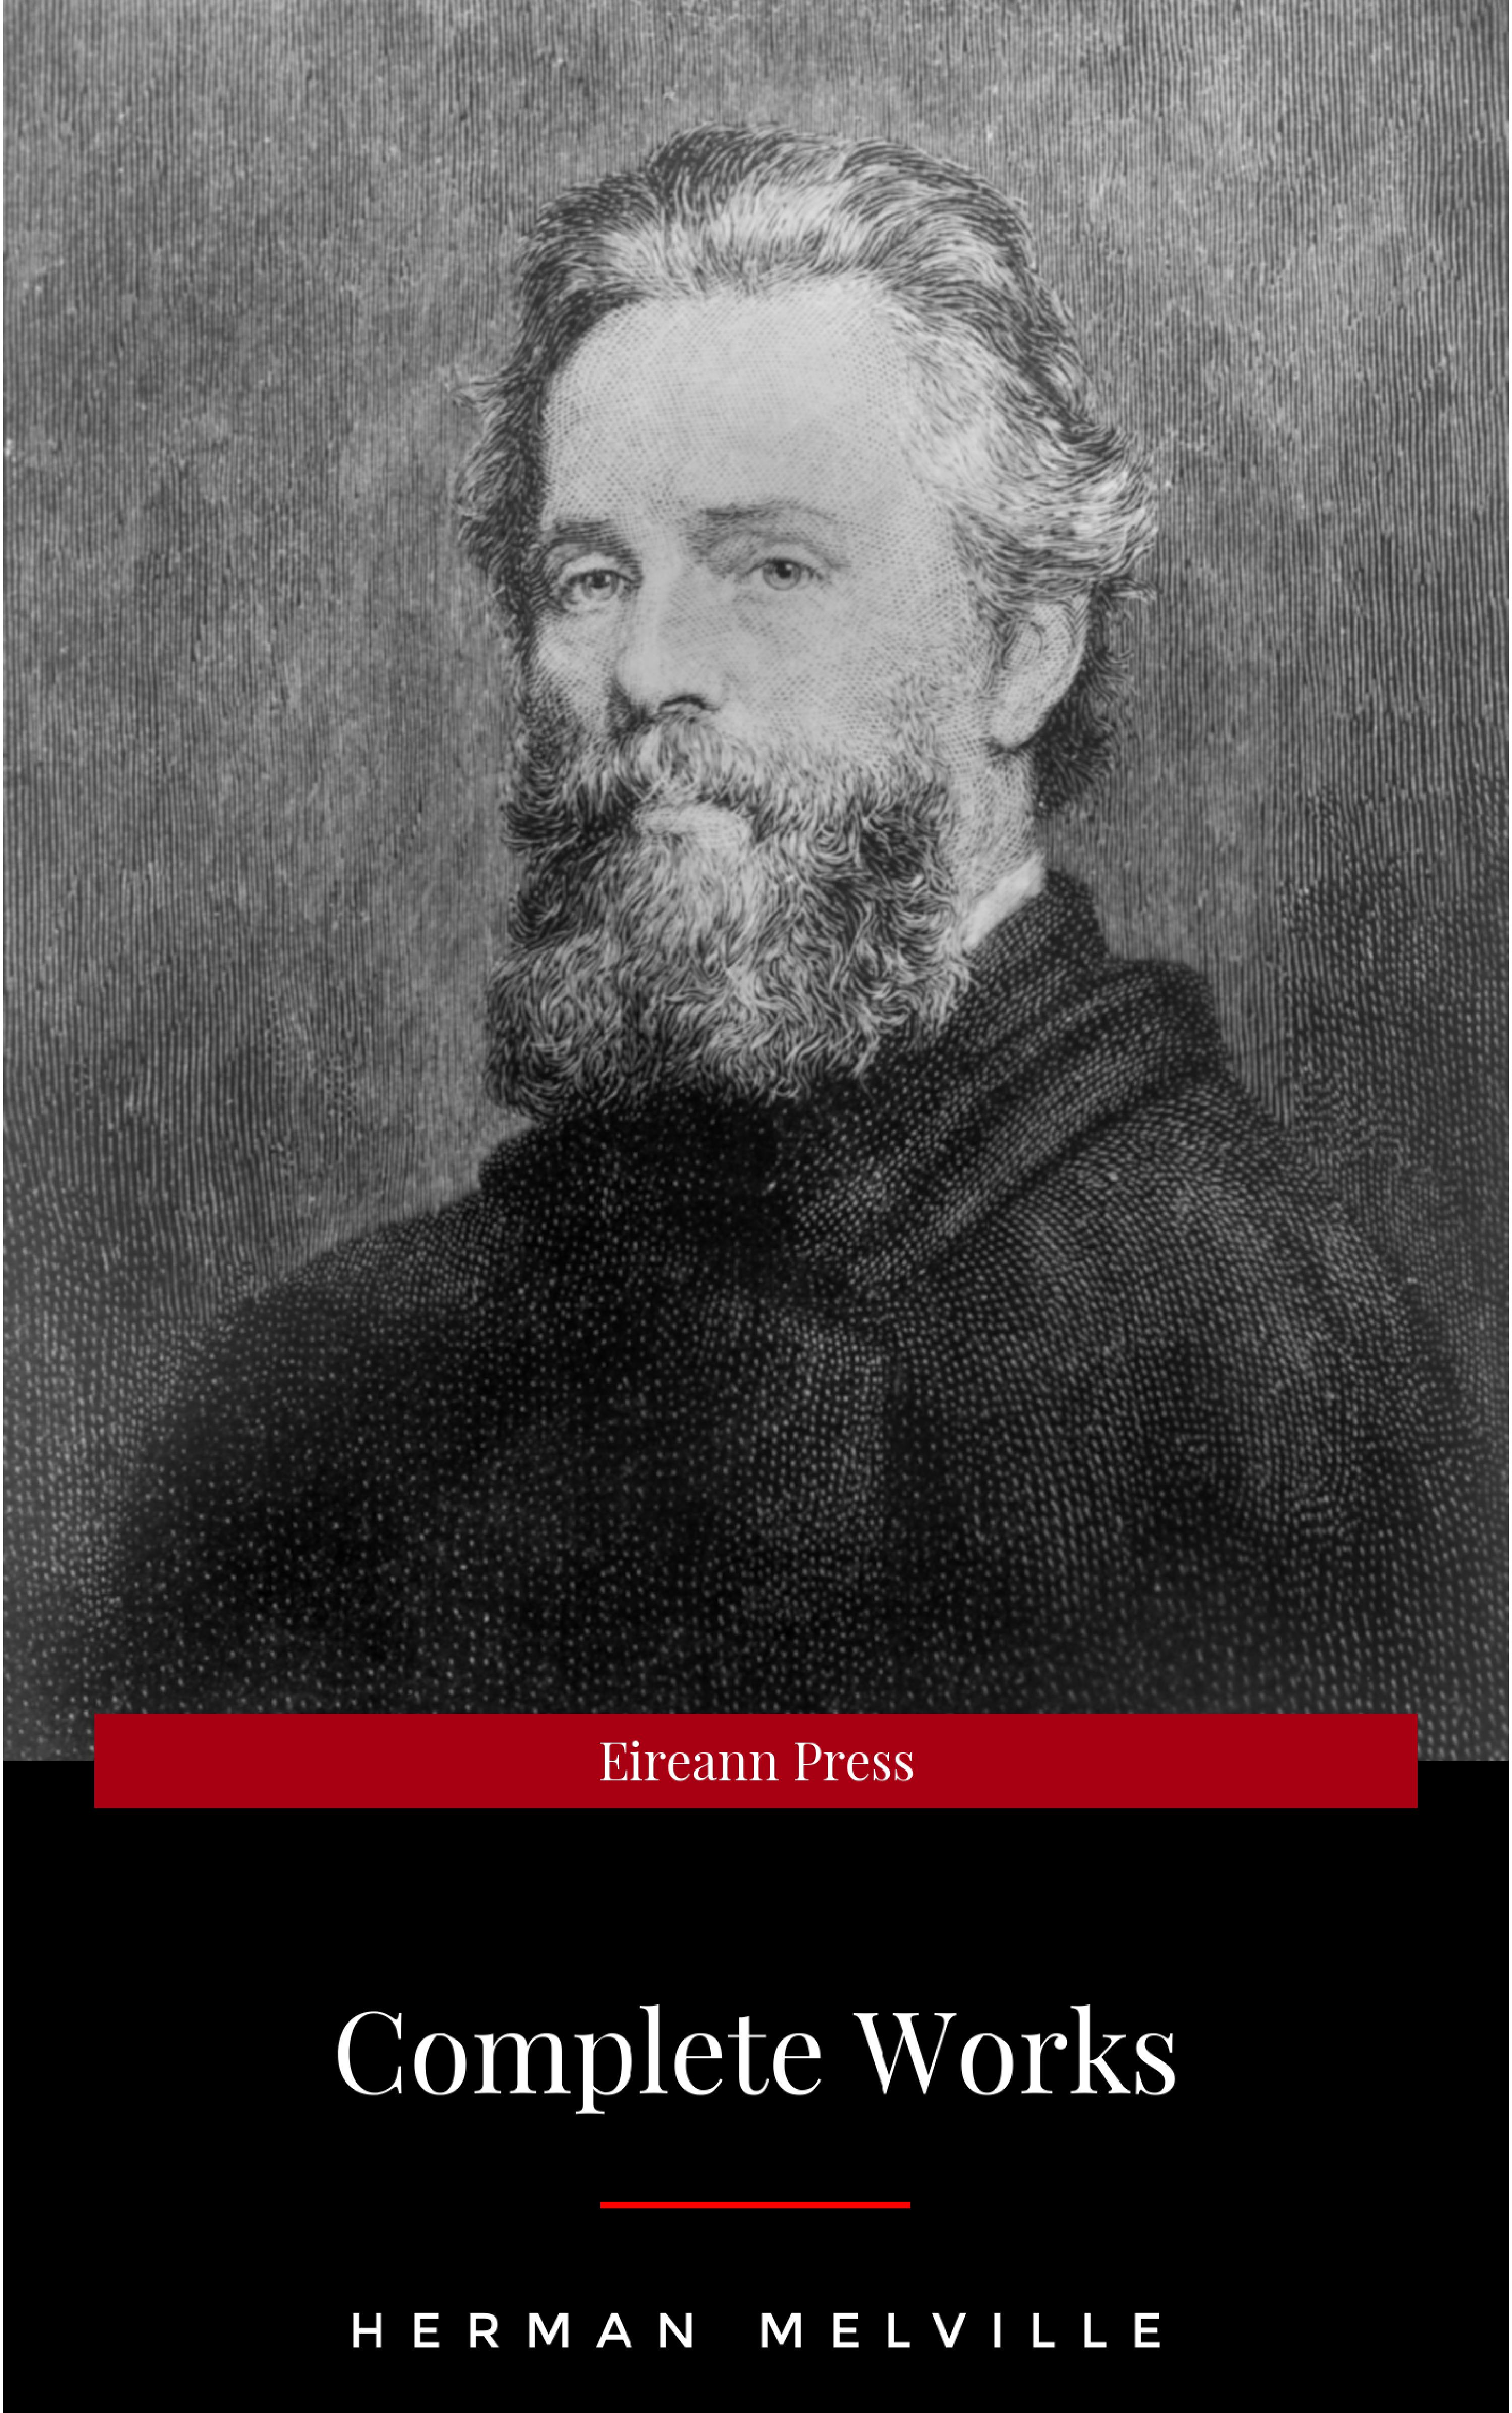 Herman Melville The Complete Works of Herman Melville (15 Complete Works of Herman Melville Including Moby Dick, Omoo, The Confidence-Man, The Piazza Tales, I and My Chimney, Redburn, Israel Potter, And More)